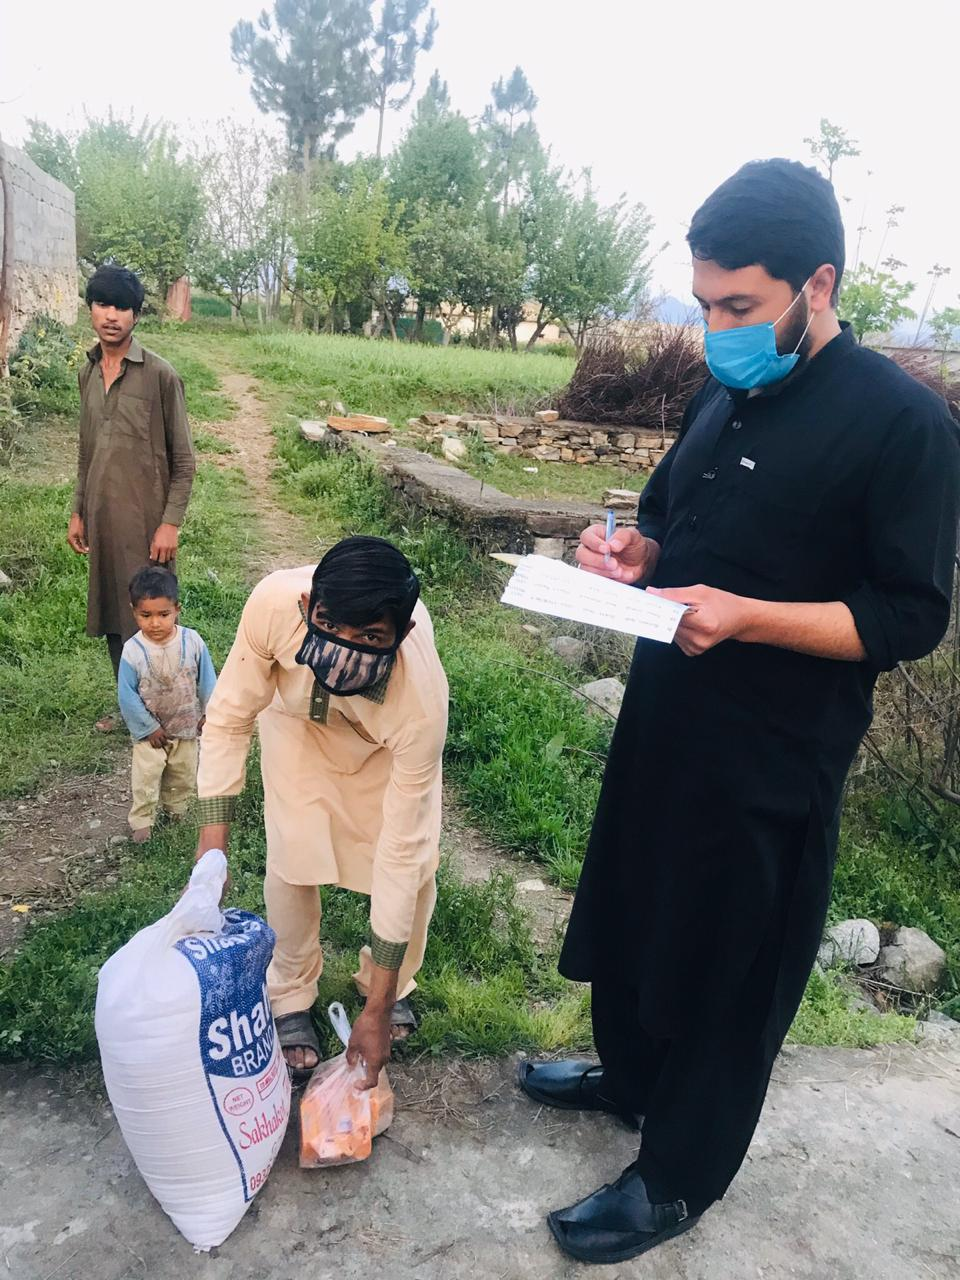 Volunteers brave the odds, reaching sealed zones amidst the coronavirus pandemic to ensure food reaches the starving